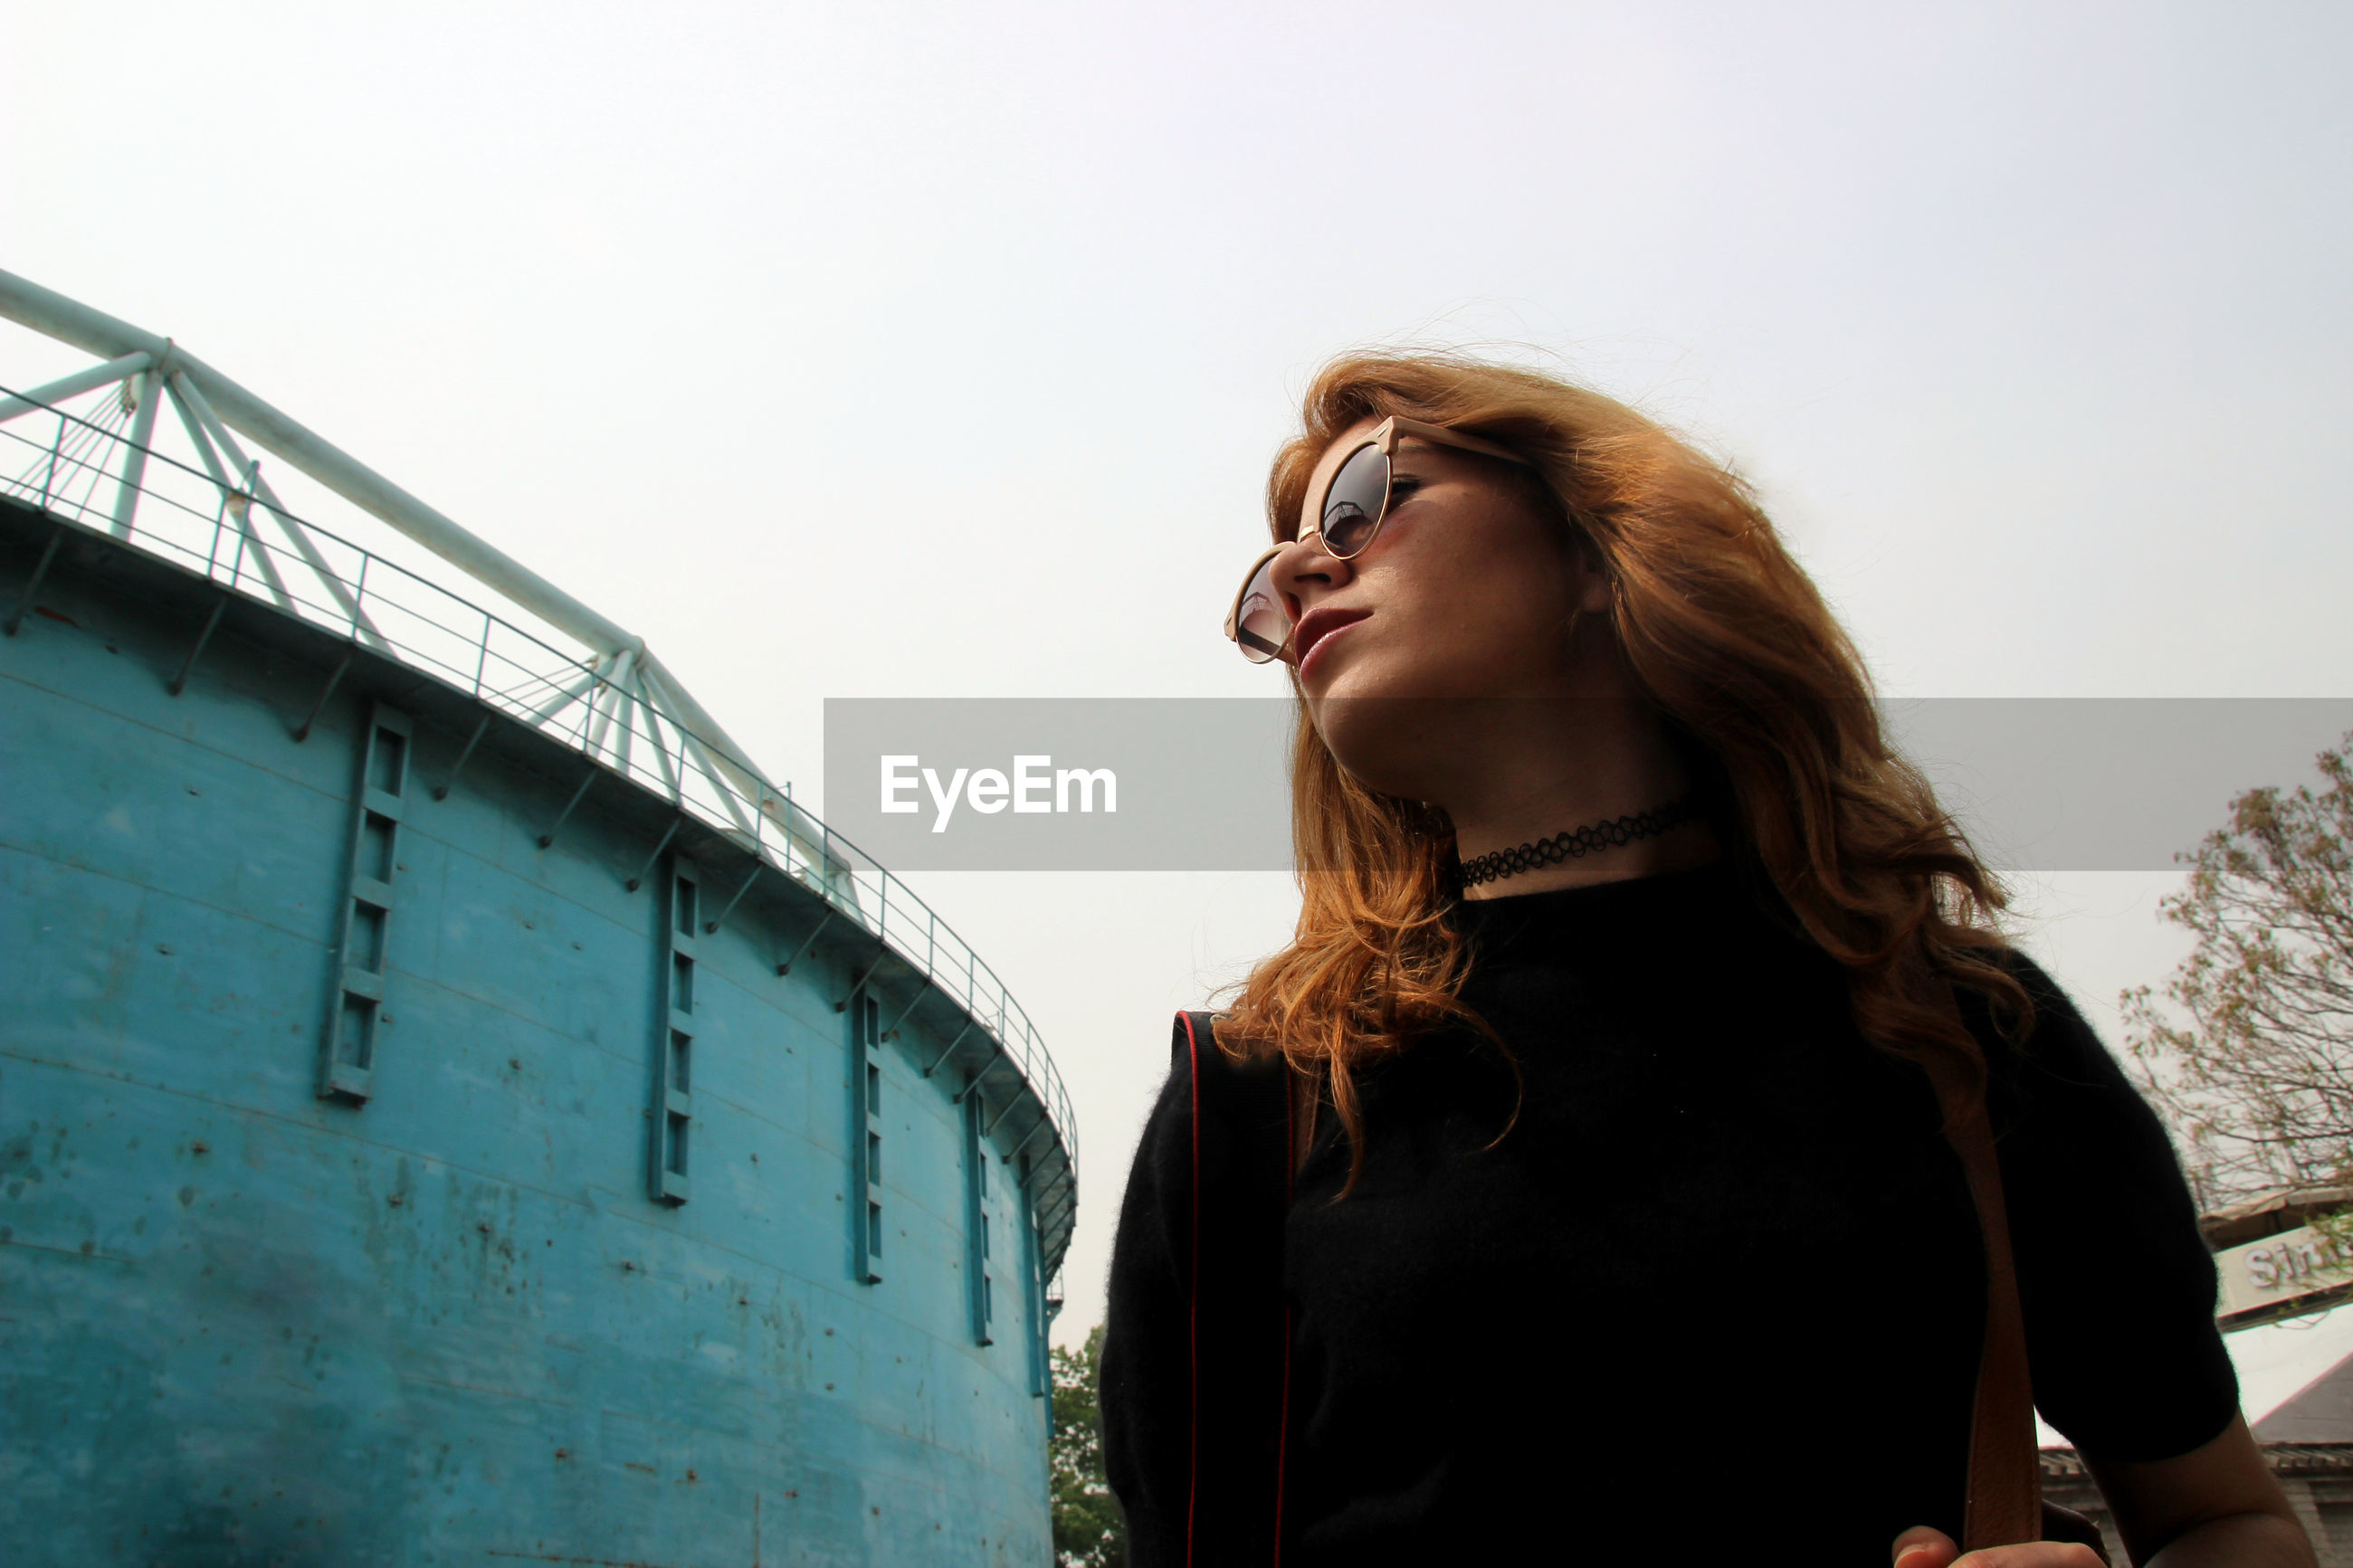 Low angle view of young woman wearing sunglasses standing against clear sky